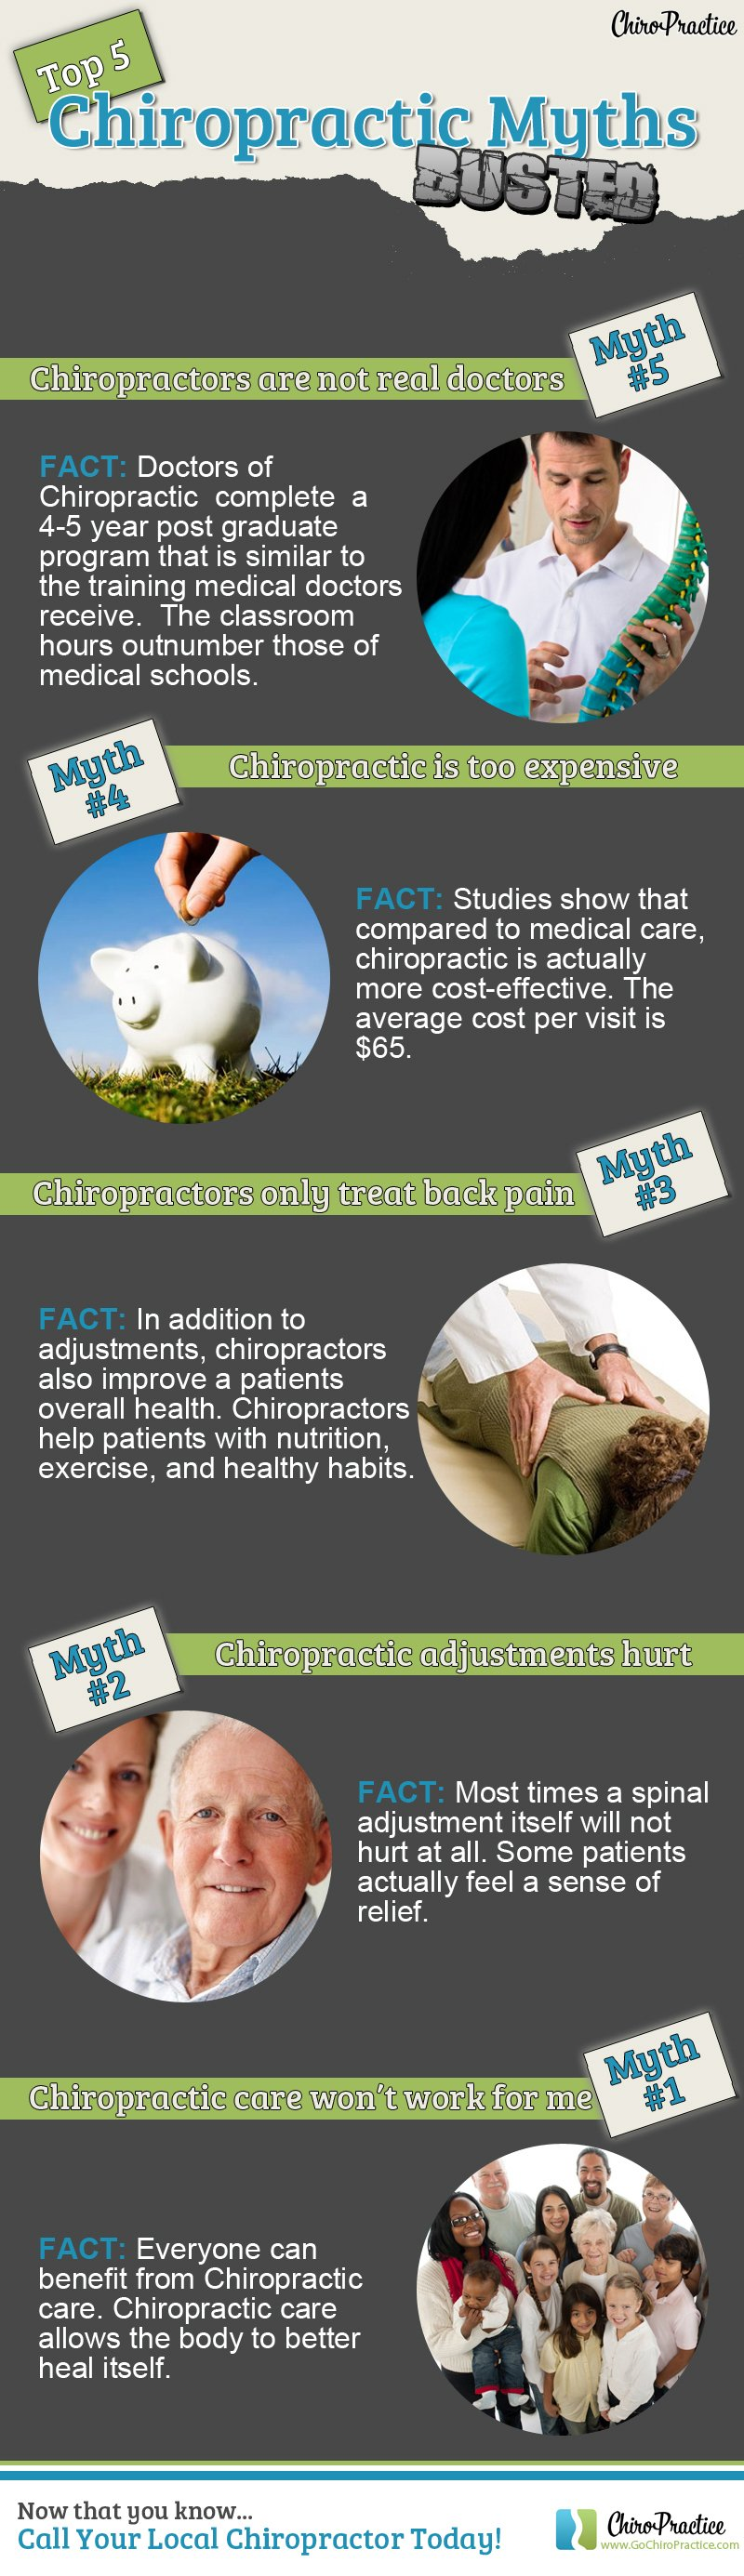 Chiropractor vs Doctor - Difference and Comparison | Diffen